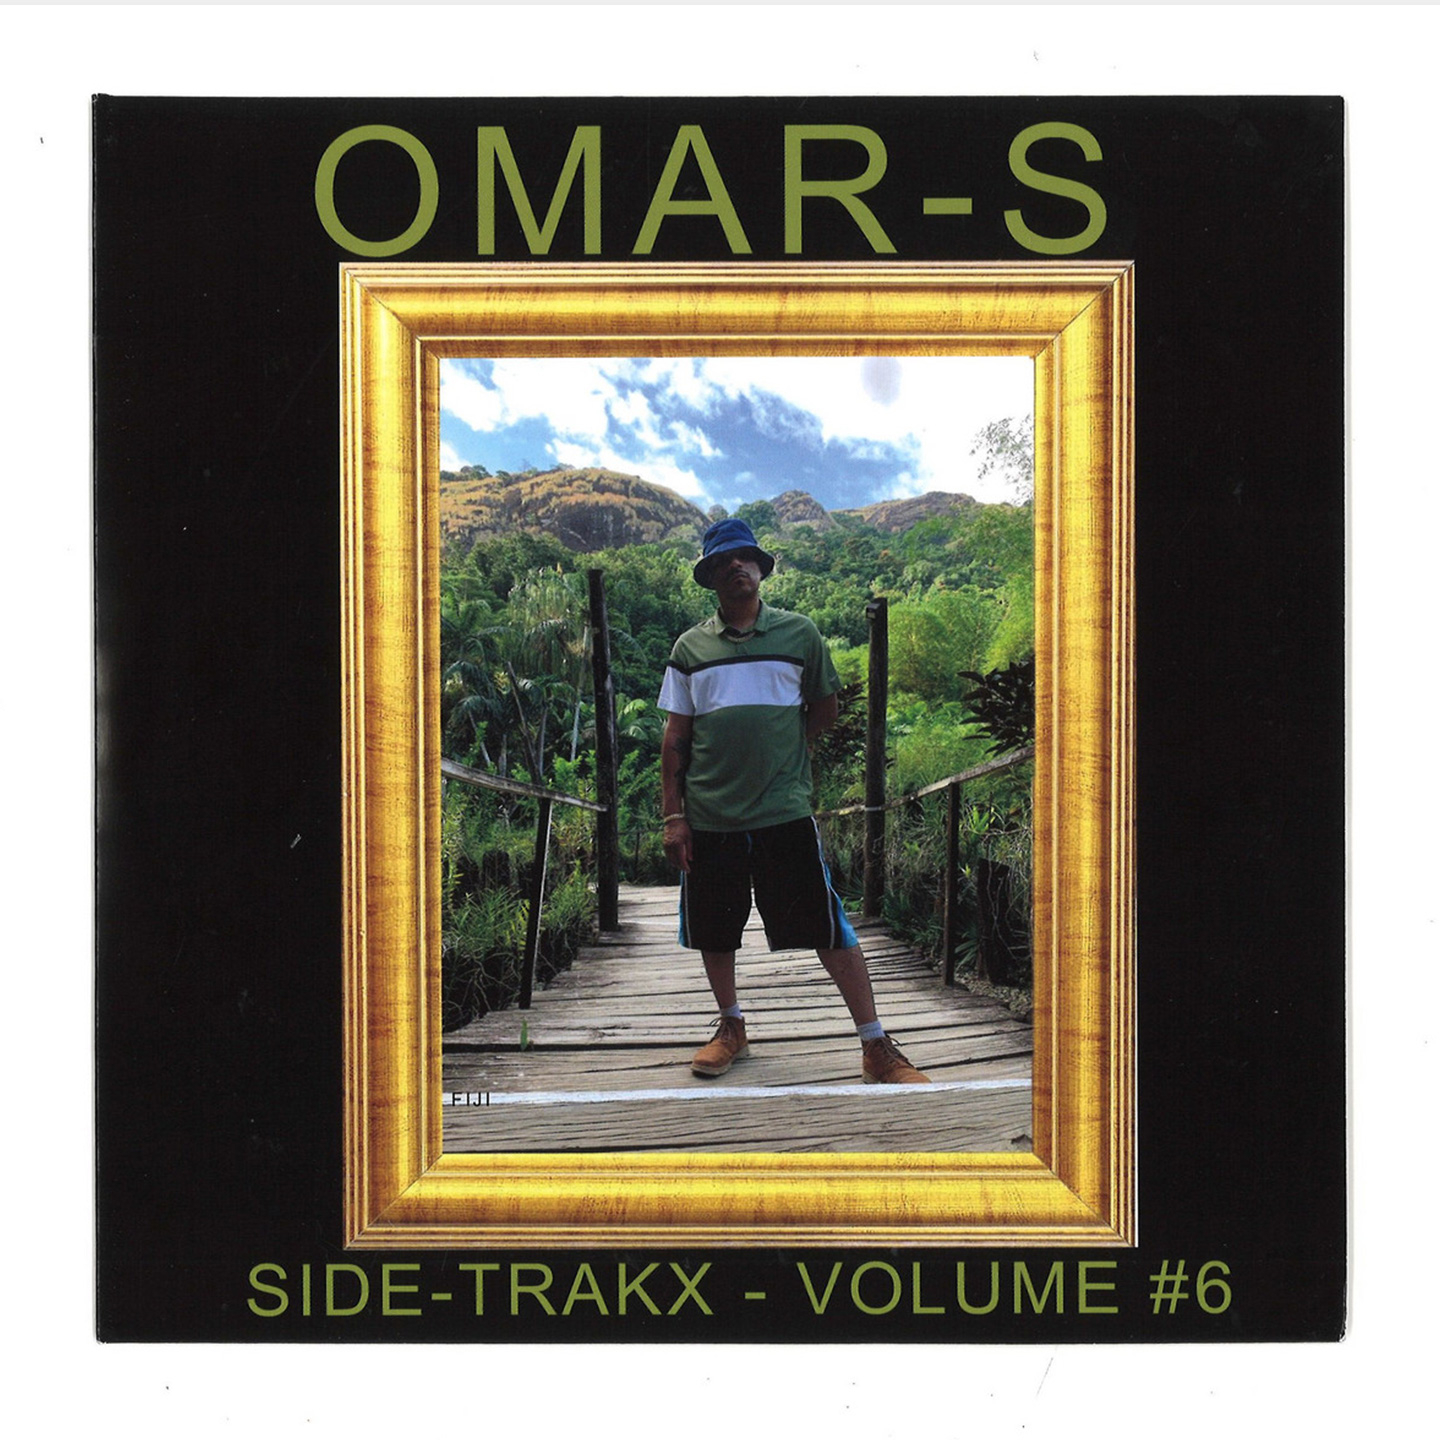 Omar-S - Side Trakx Vol#6